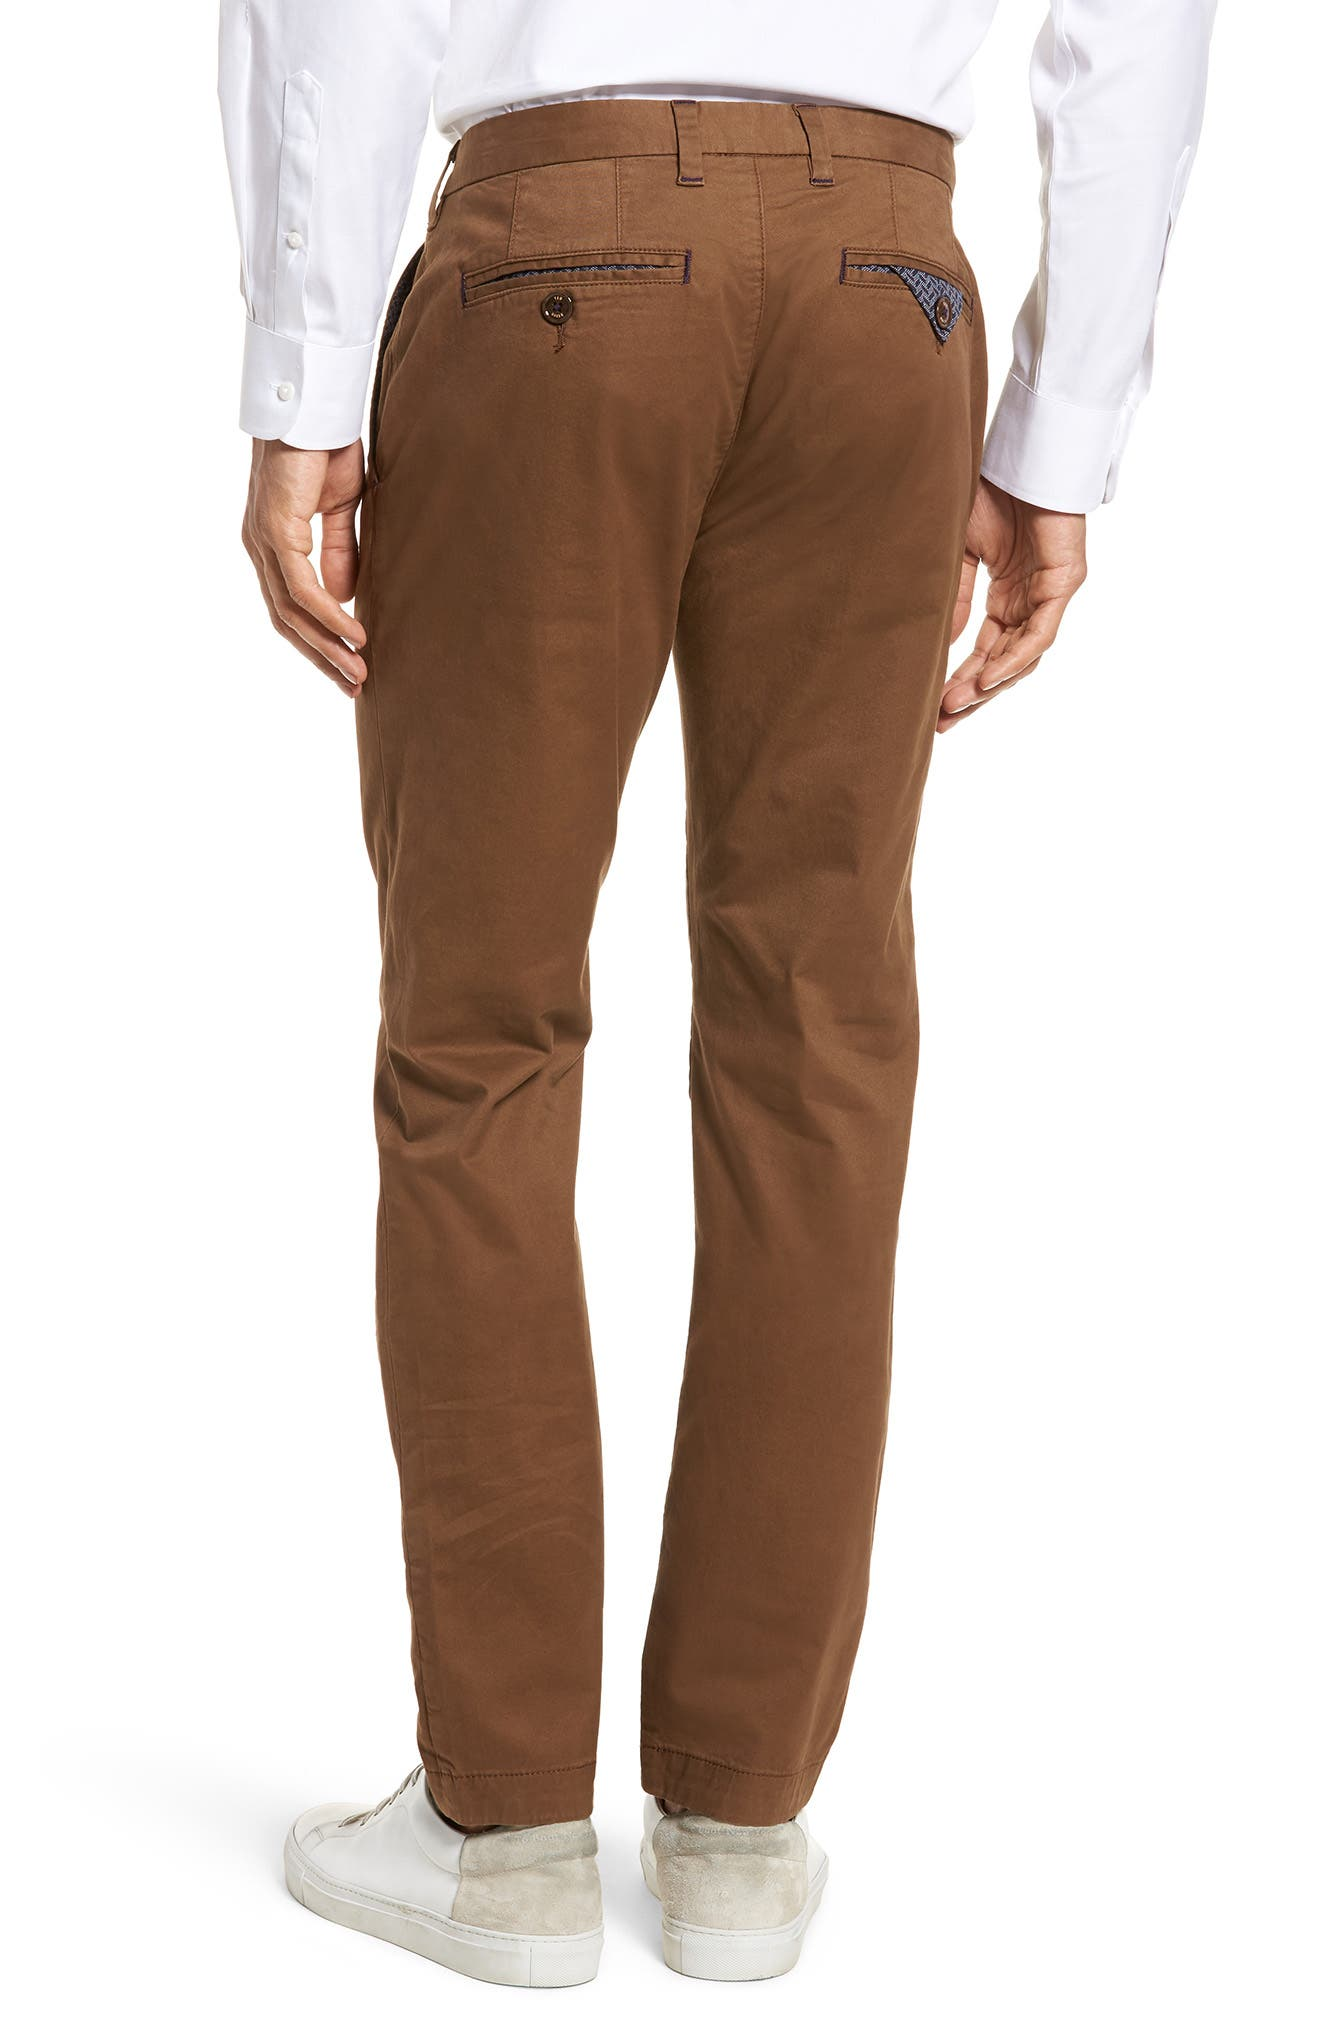 Proctt Flat Front Stretch Solid Cotton Pants,                             Alternate thumbnail 2, color,                             TAN